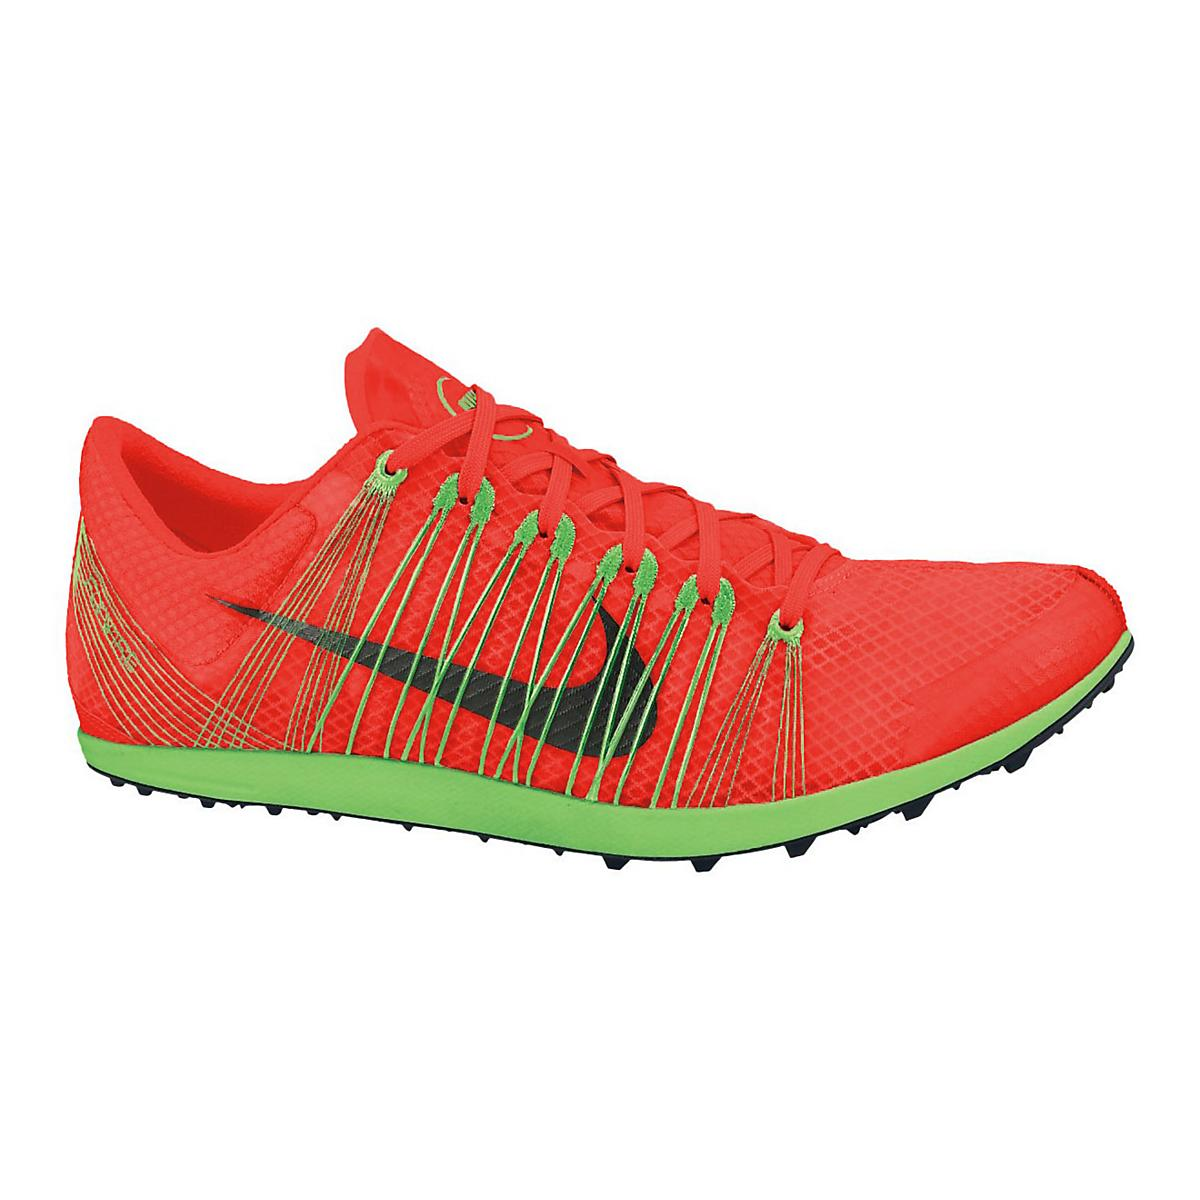 low priced ac470 df87a Nike Zoom Victory Waffle 2 Cross Country Shoe at Road Runner Sports